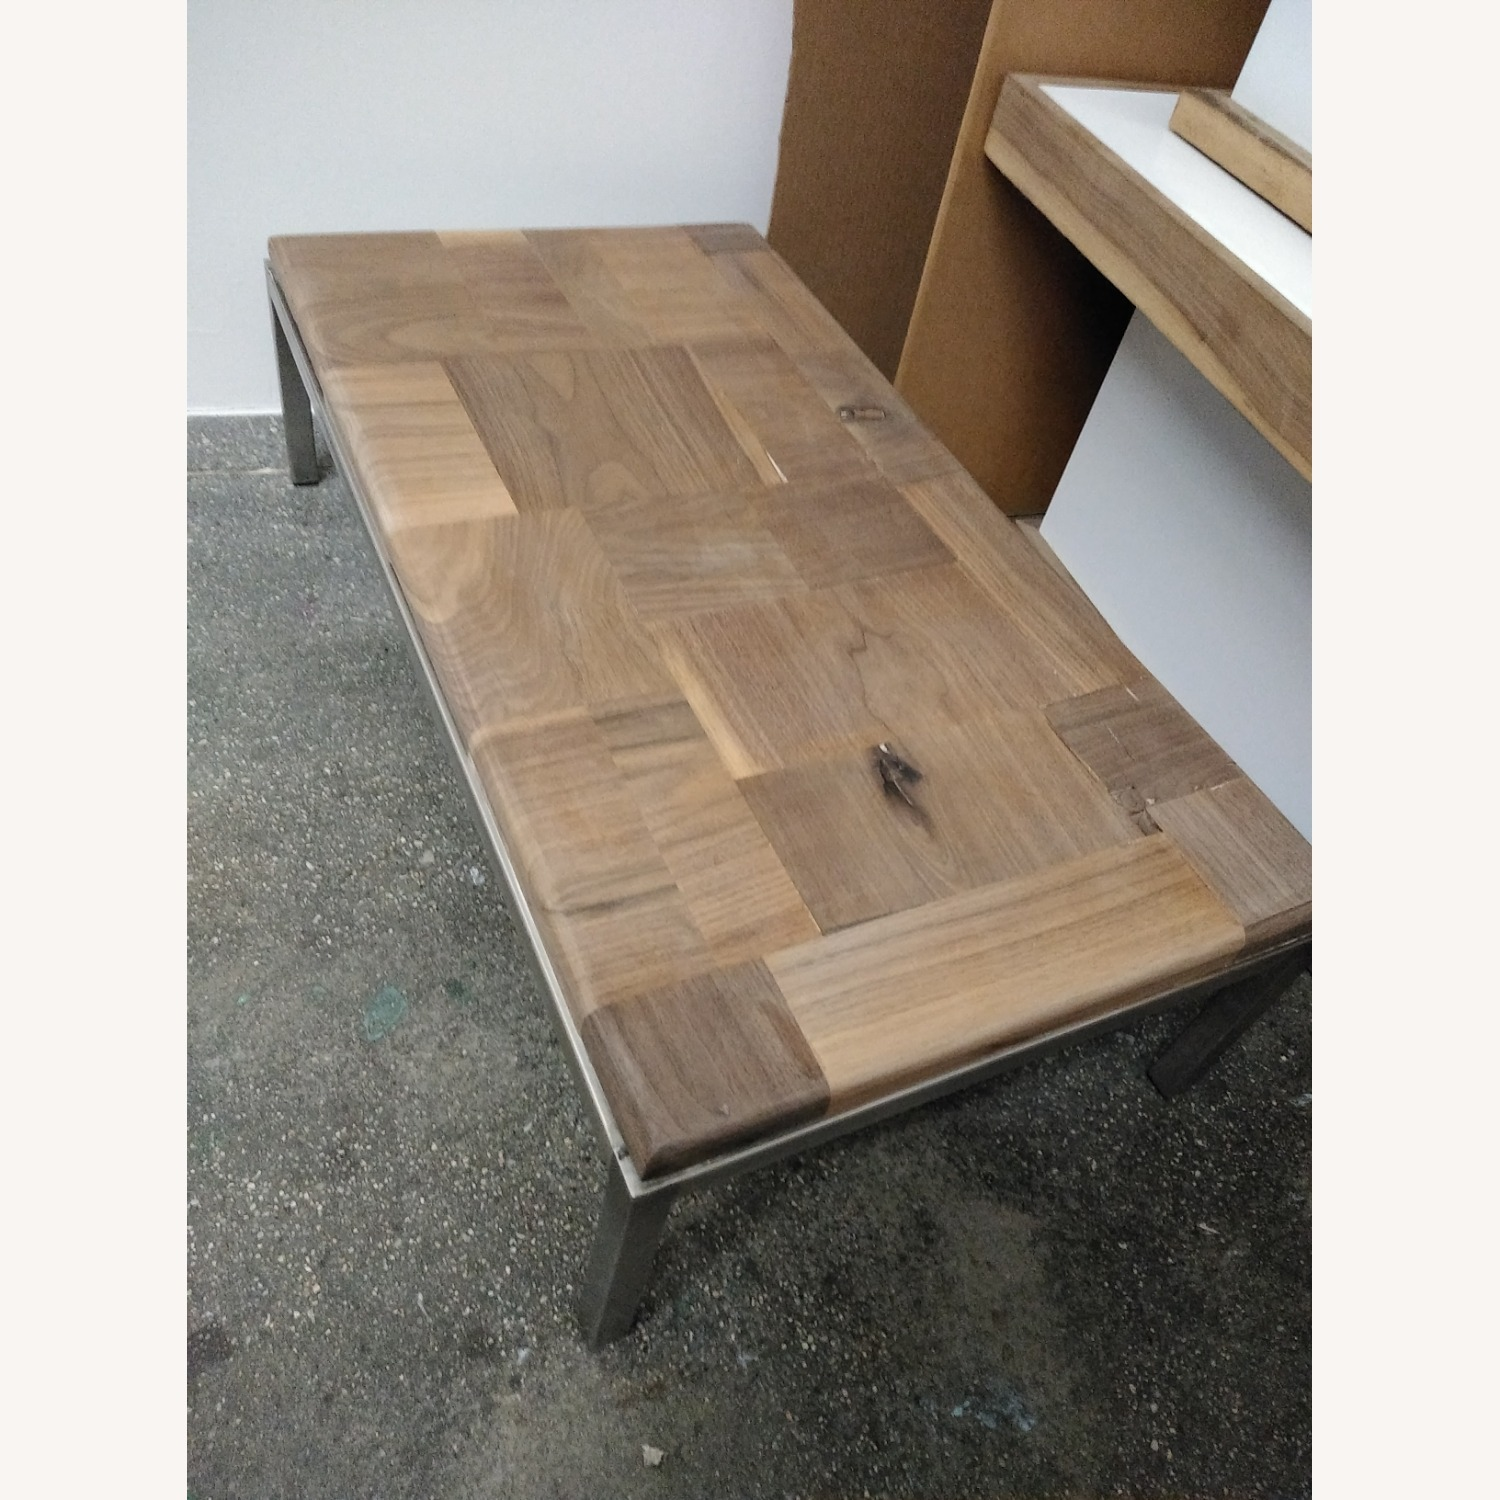 Restoration Hardware Solid Walnut Mosaic Coffee Table - image-17